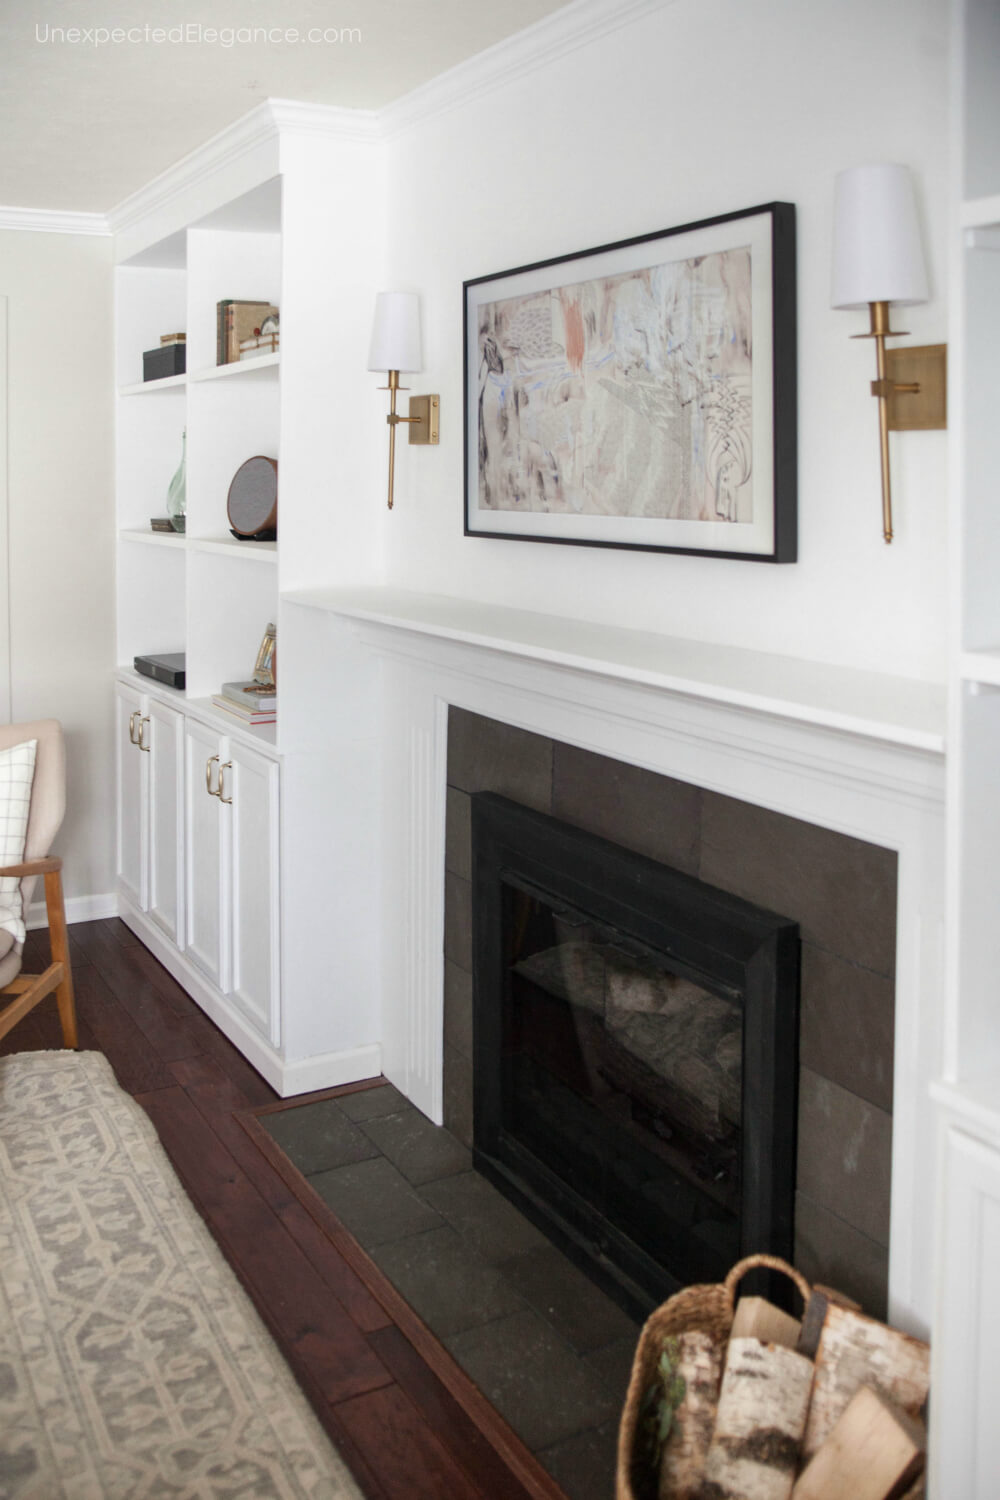 How to hang a TV over the fireplace and hide the cords.